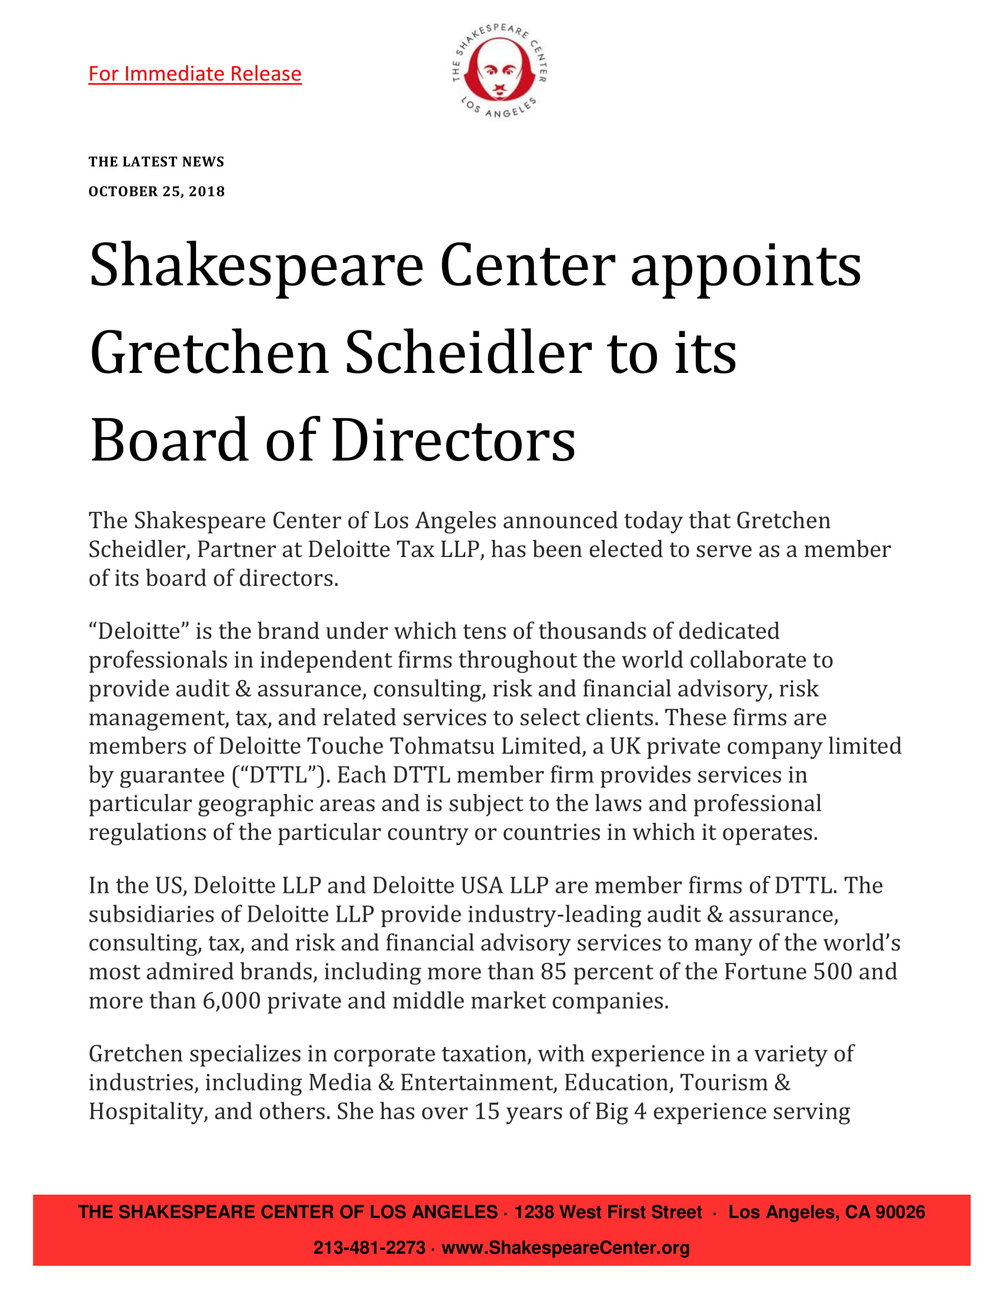 Gretchen Scheidler Press Release-1.jpg